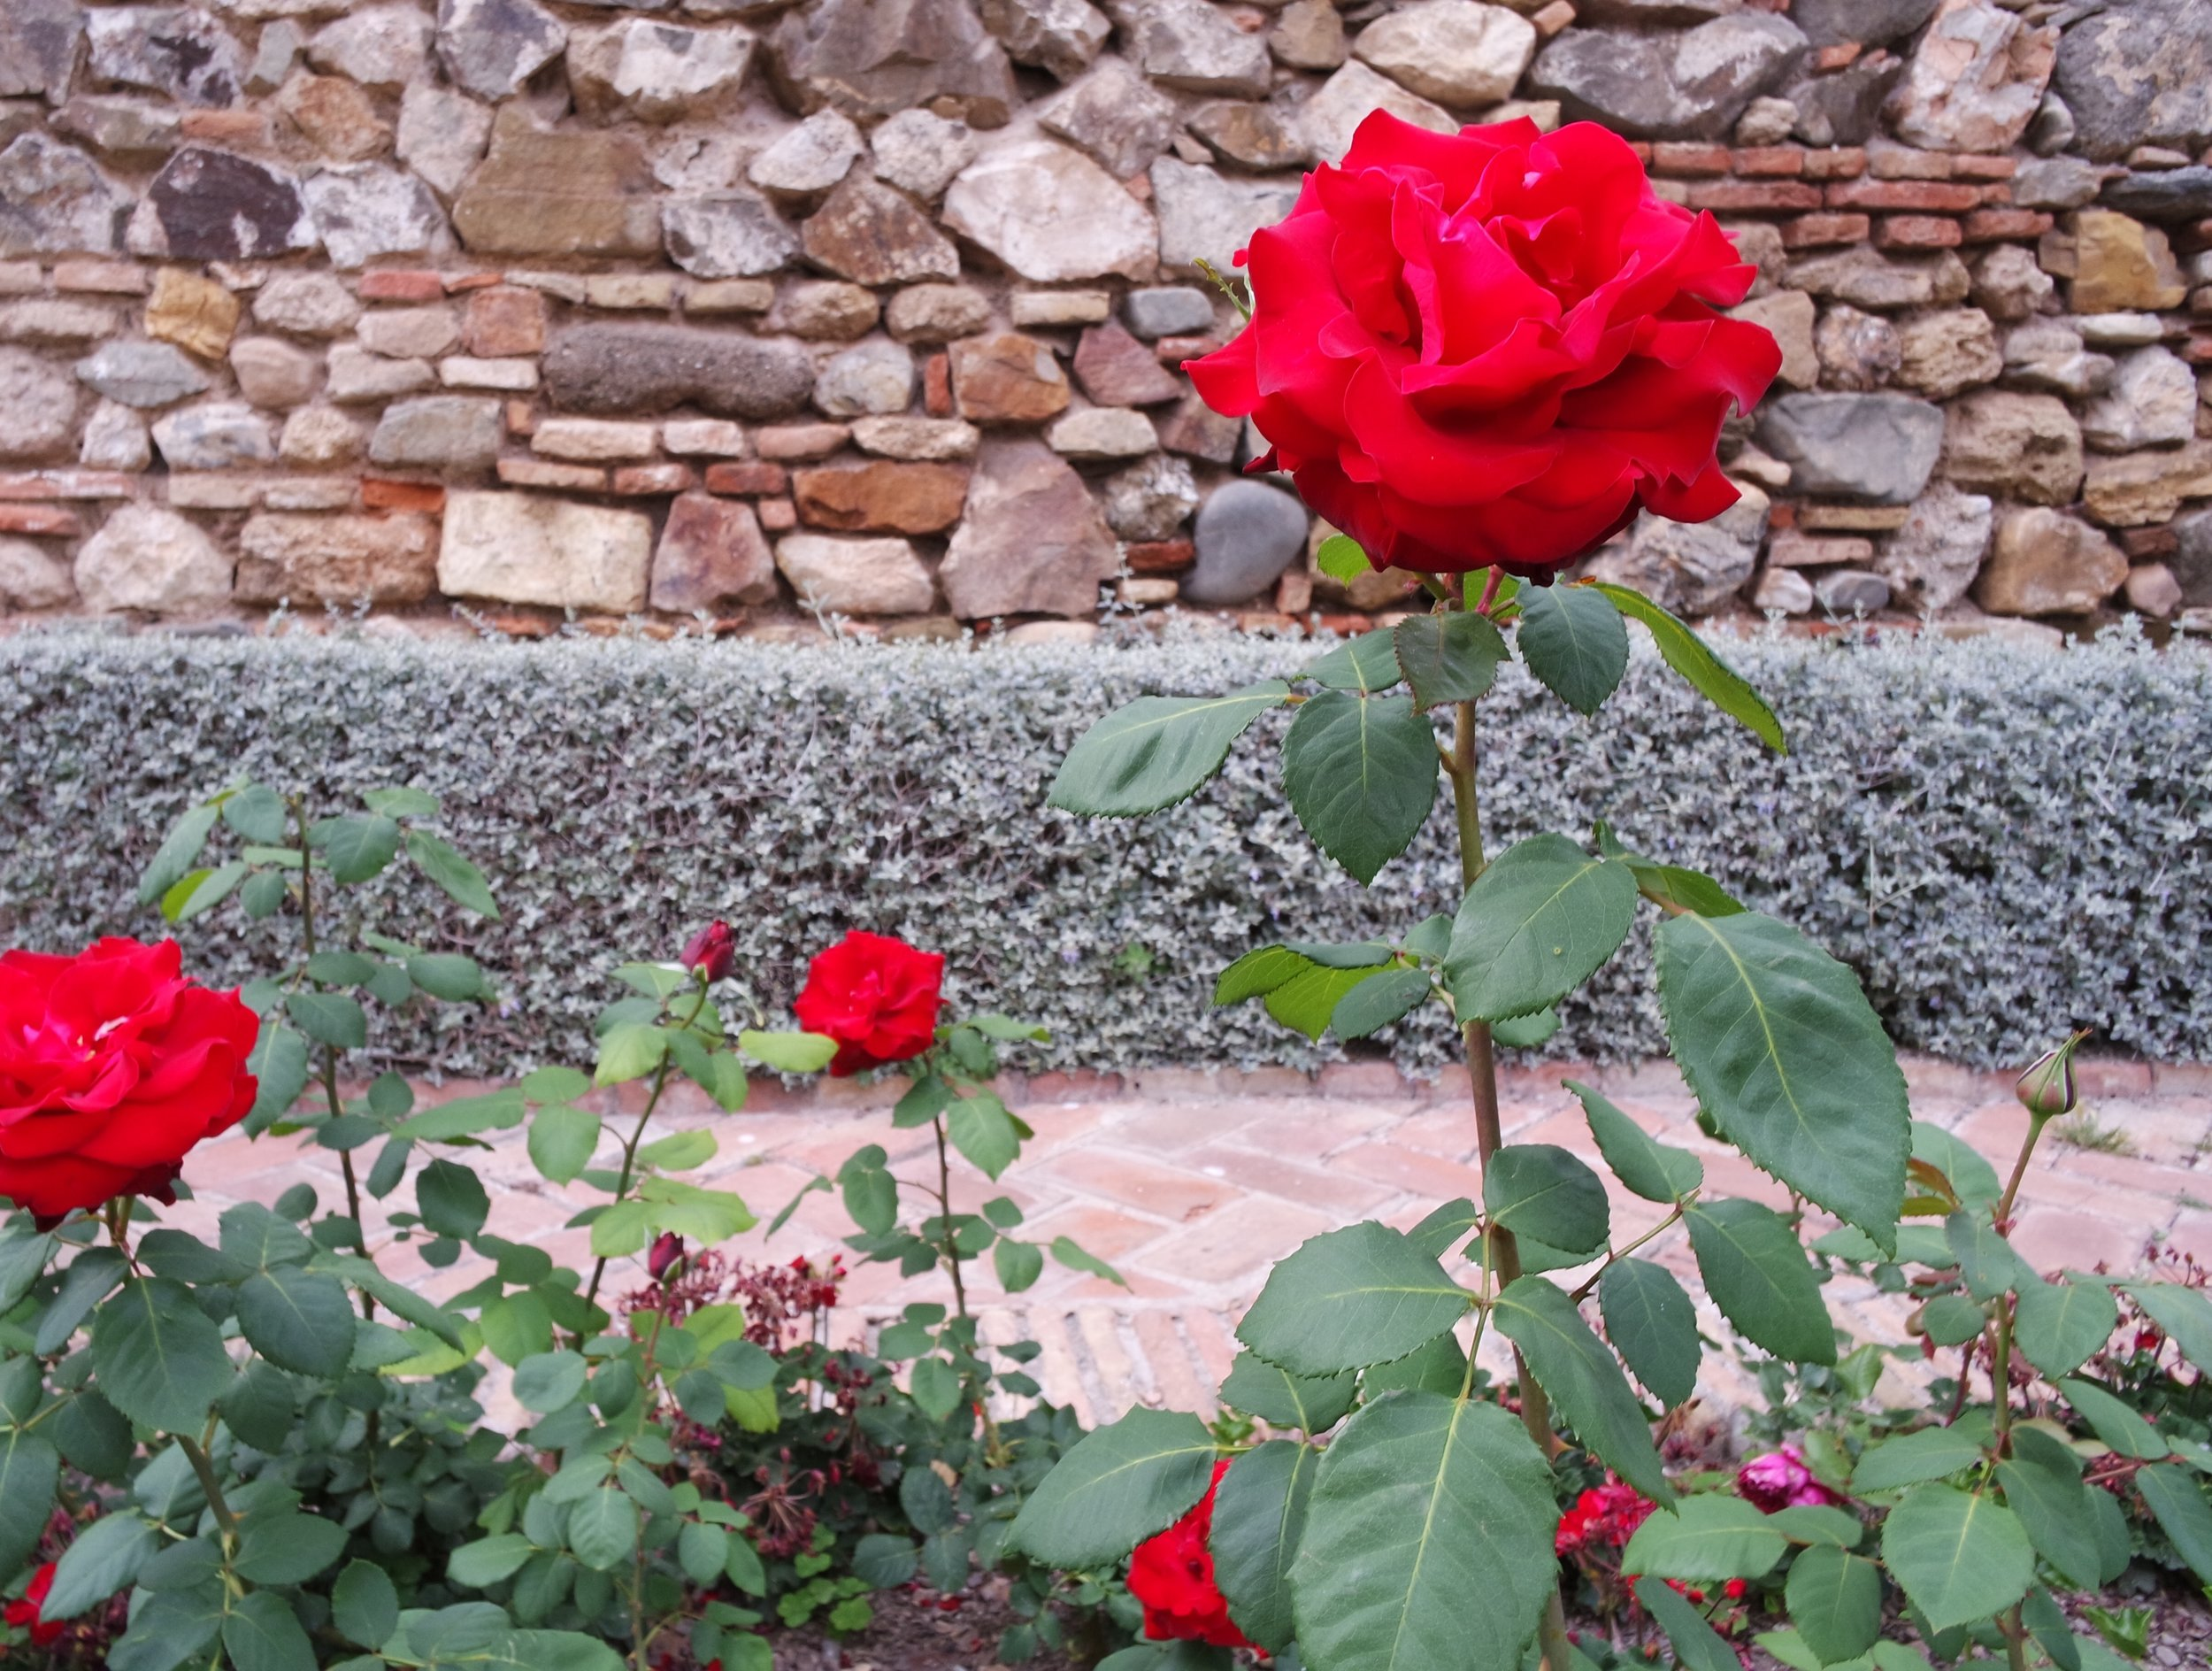 Take time to stop and smell the roses. An Islamic garden is a place of reflection and a reminder of paradise